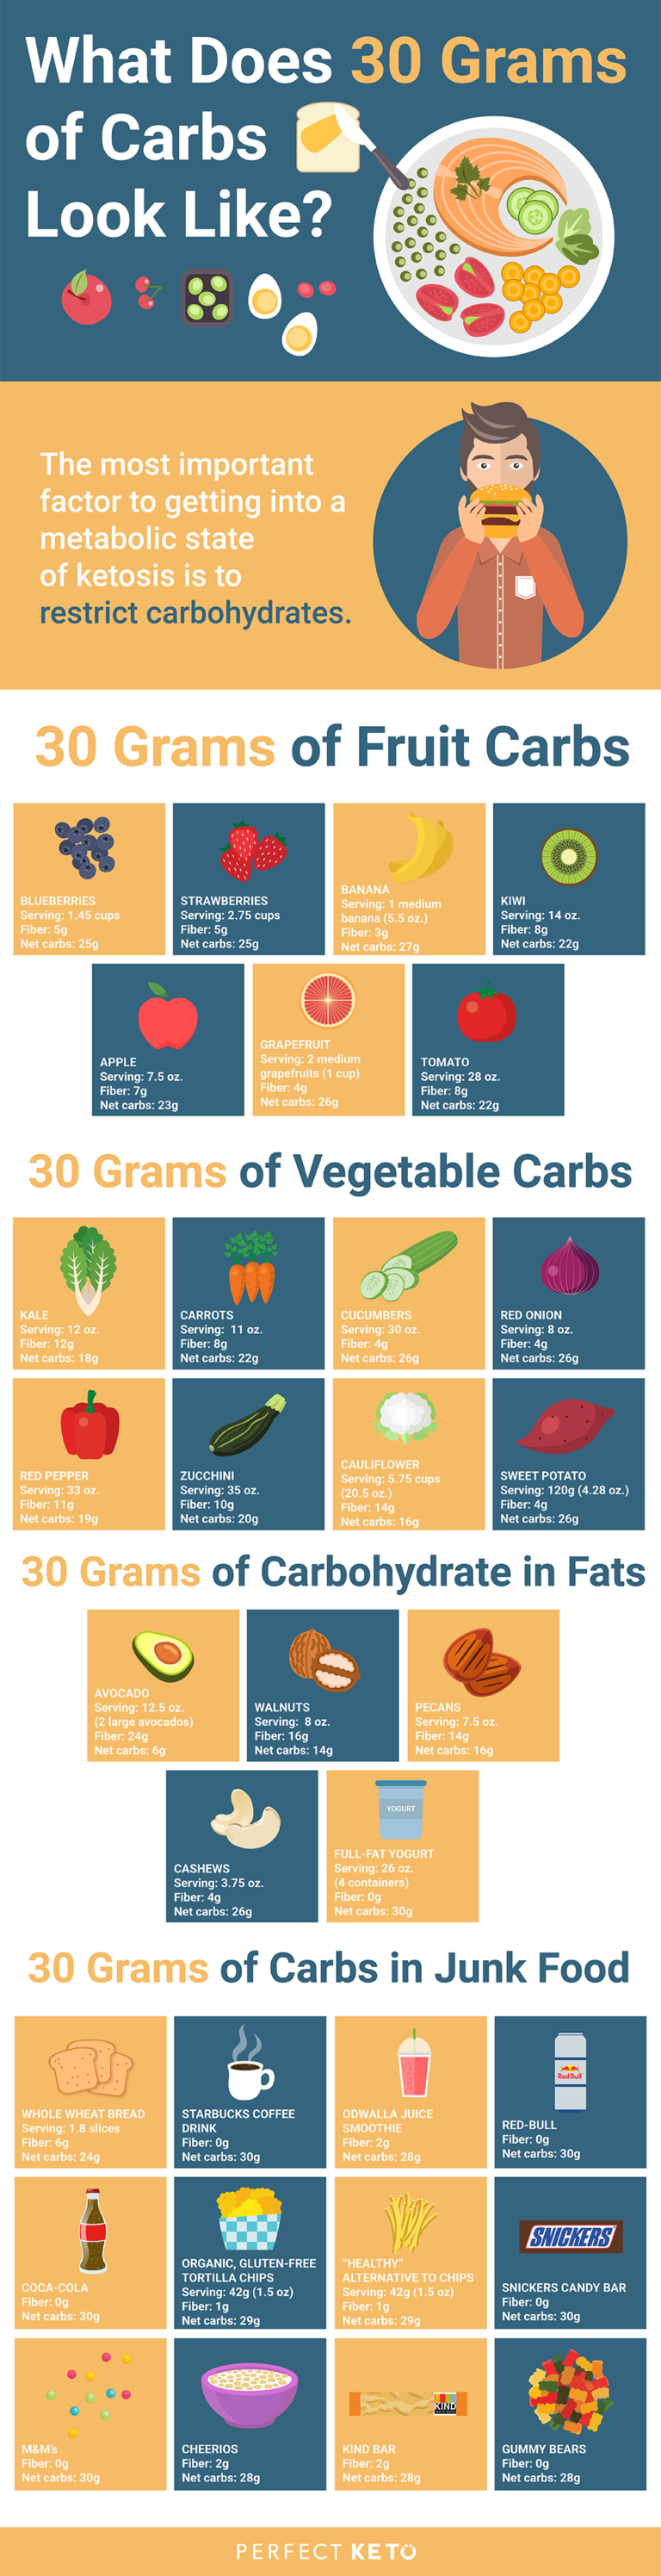 how many carbs per day on keto diet